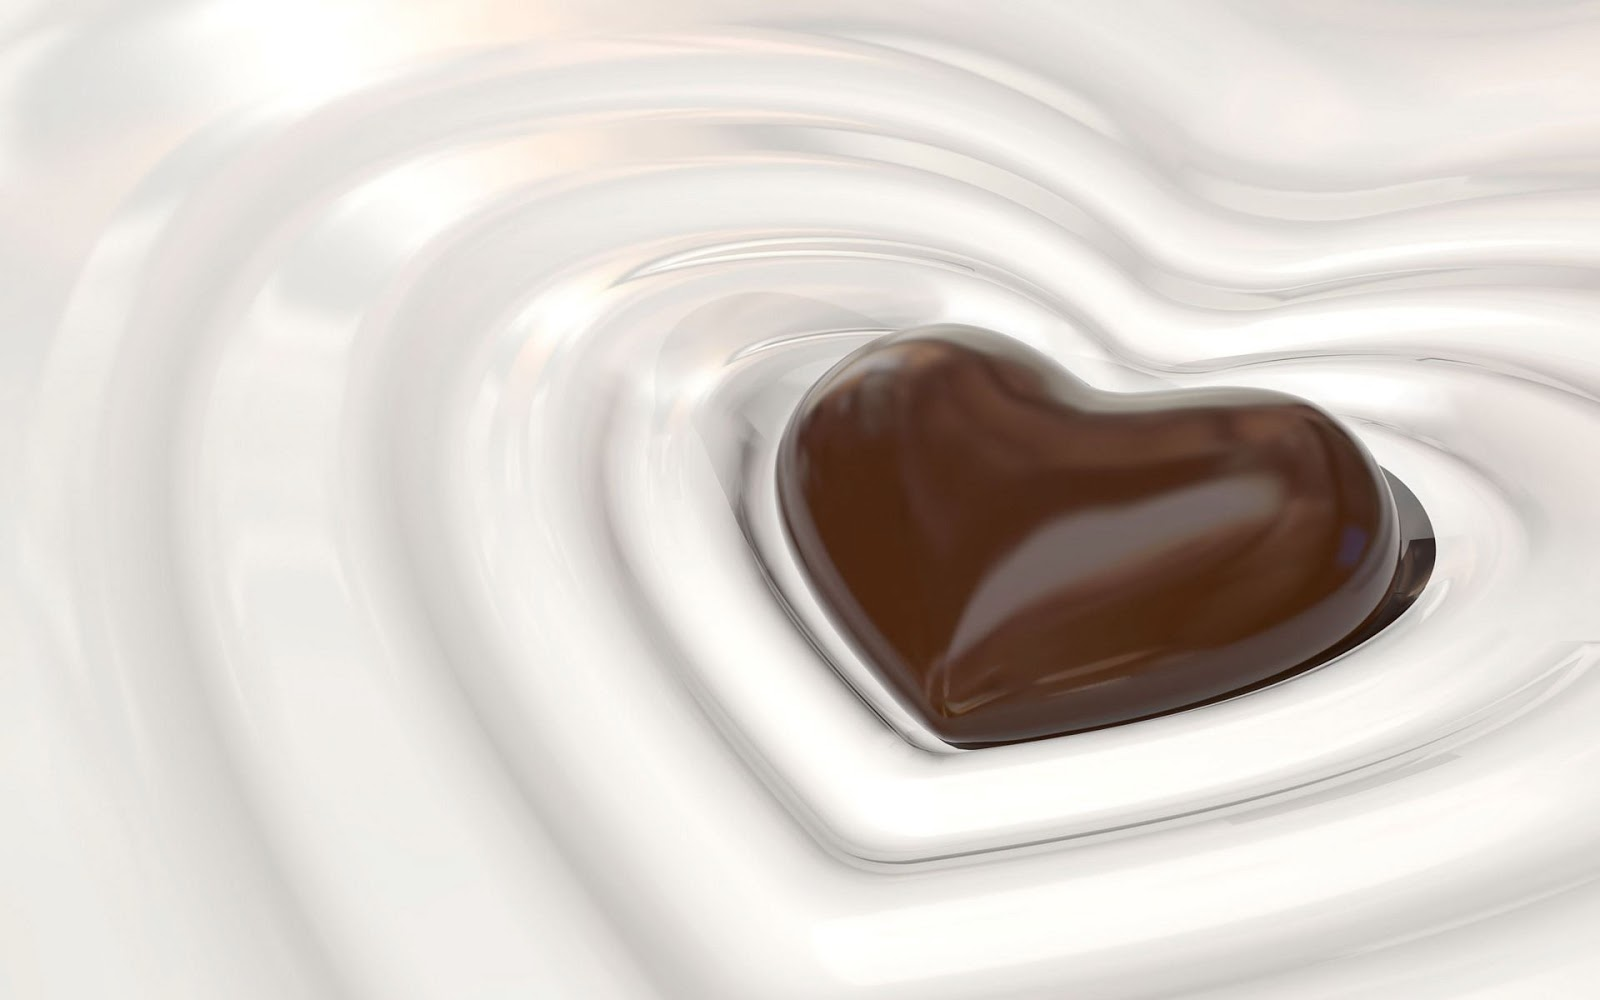 chocolate heart cake wallpaper - photo #27